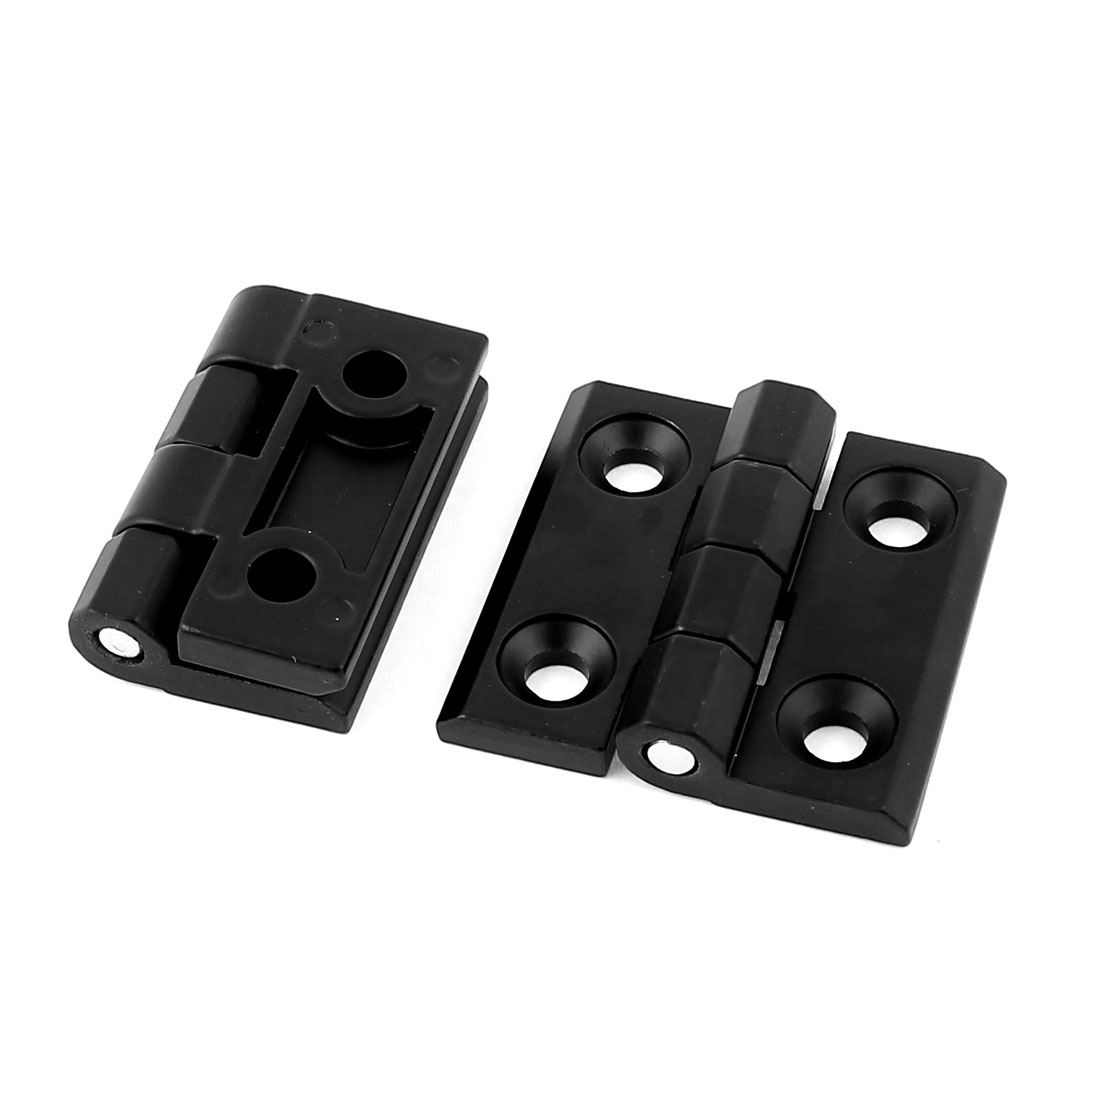 UXCELL 50Mm X 50Mm Zinc Alloy Closet Cupboard Cabinet Door Butt Hinge Black 2Pcs 2pcs set stainless steel 90 degree self closing cabinet closet door hinges home roomfurniture hardware accessories supply